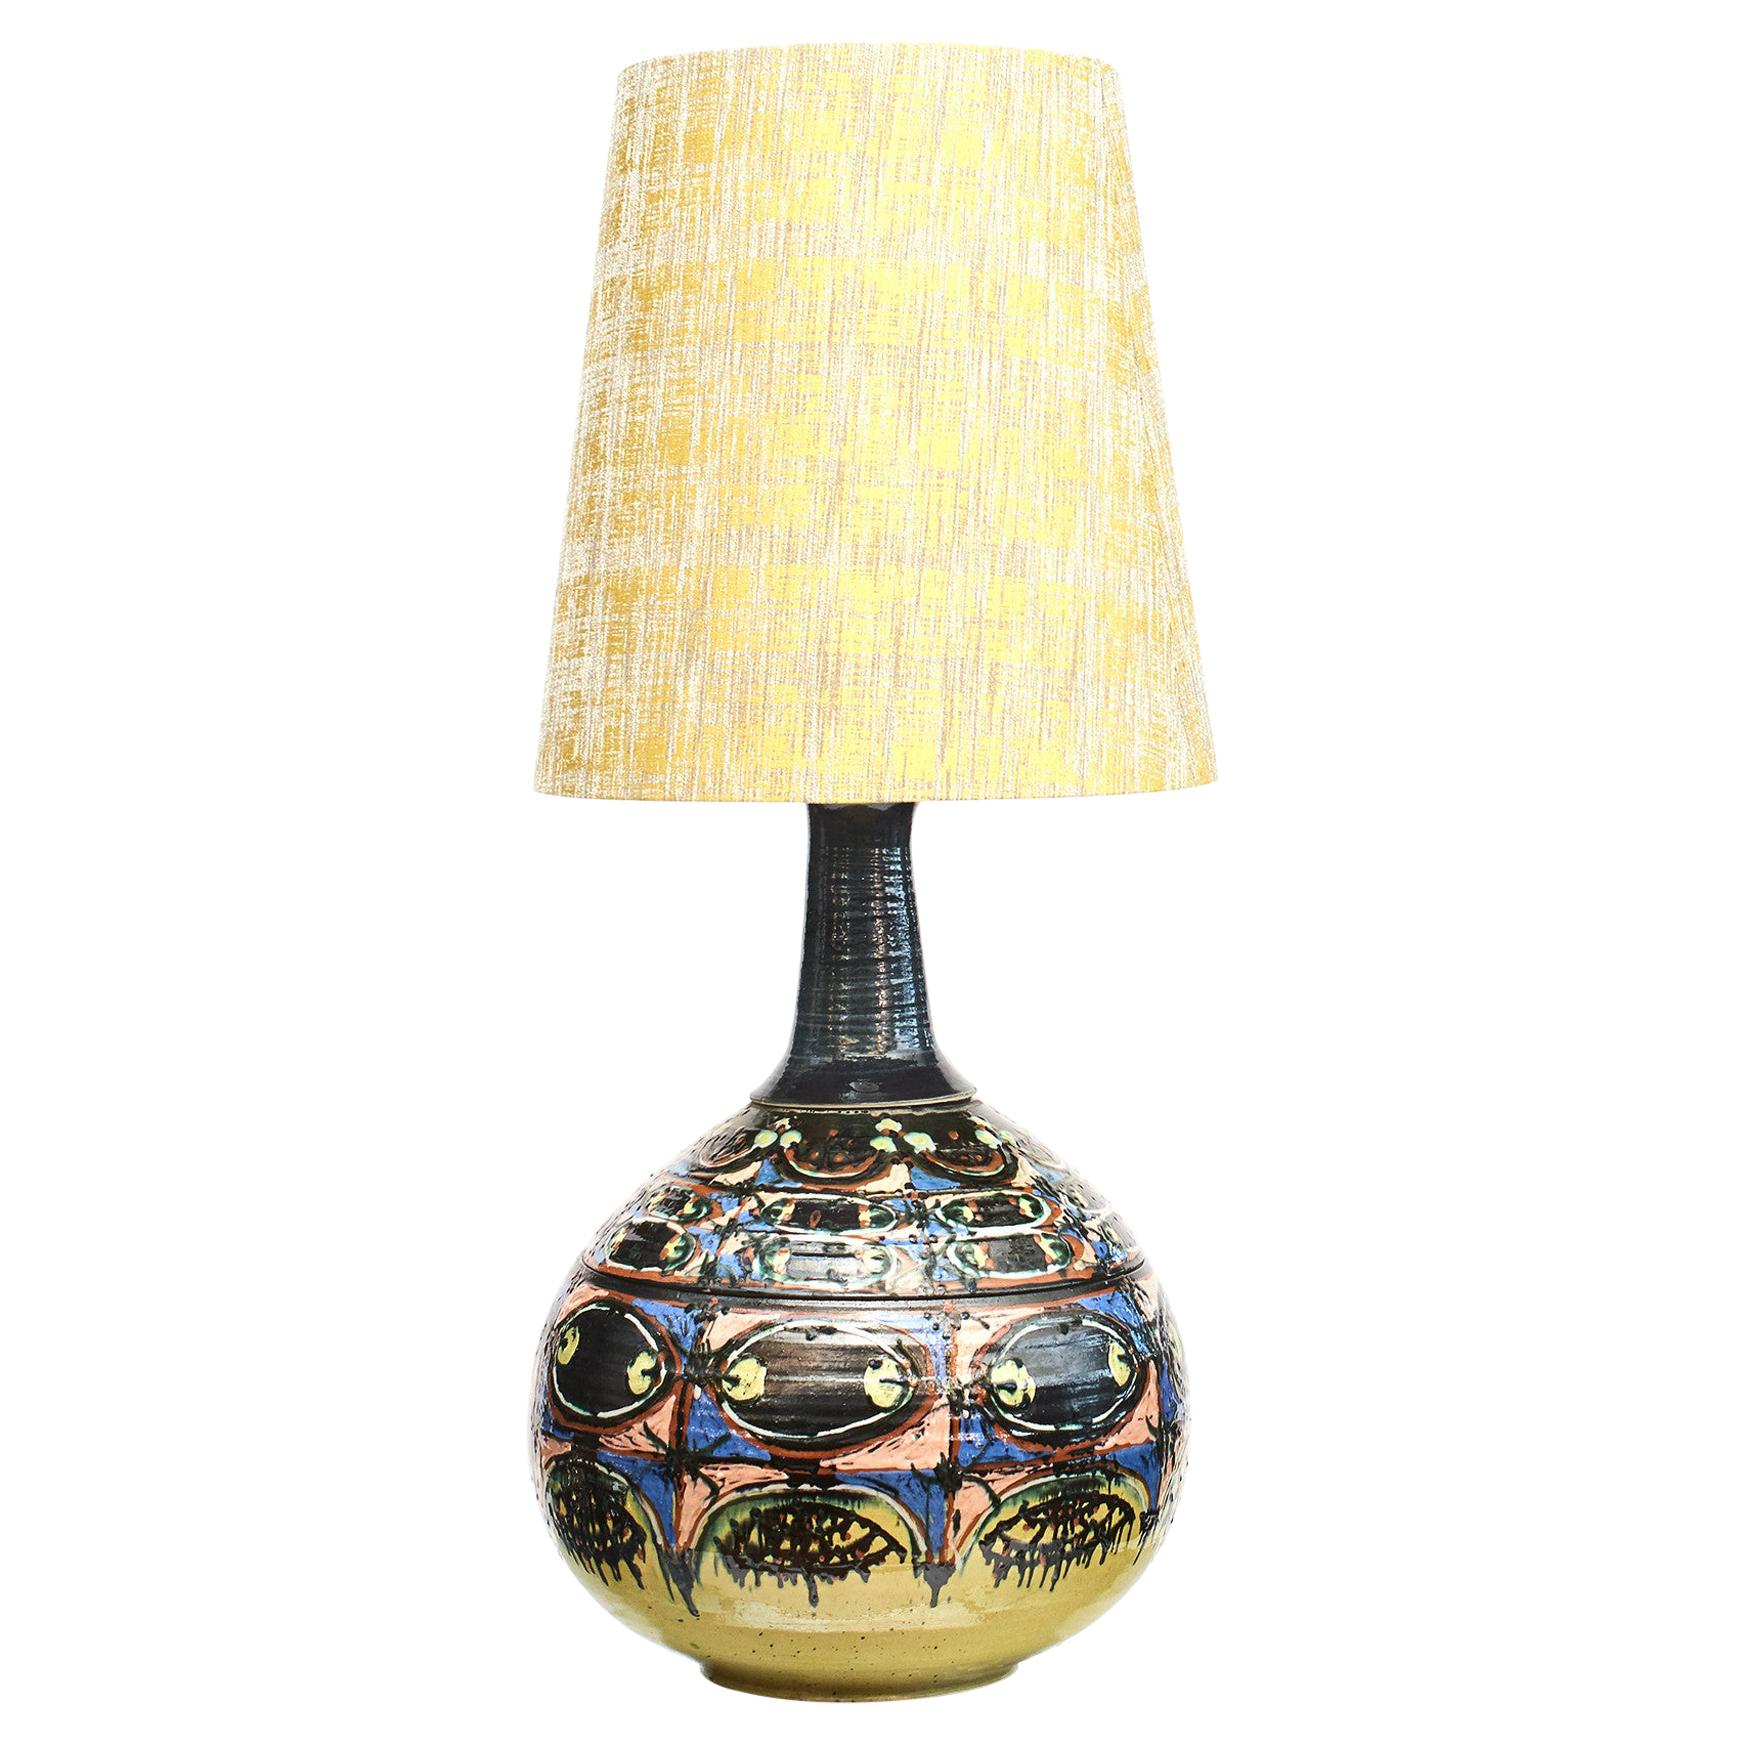 Rare Colossal 'One Of A Kind' Ceramic Lamp by Bjorn Wiinblad